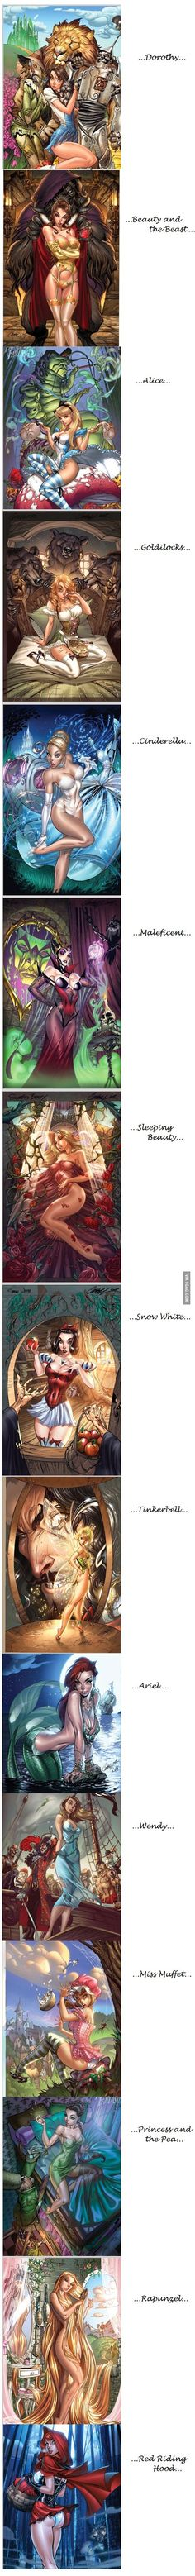 More J. Scott Campbell pin up Disney. Except that's not Maleficent >.< that's the Evil Queen from Snow White.